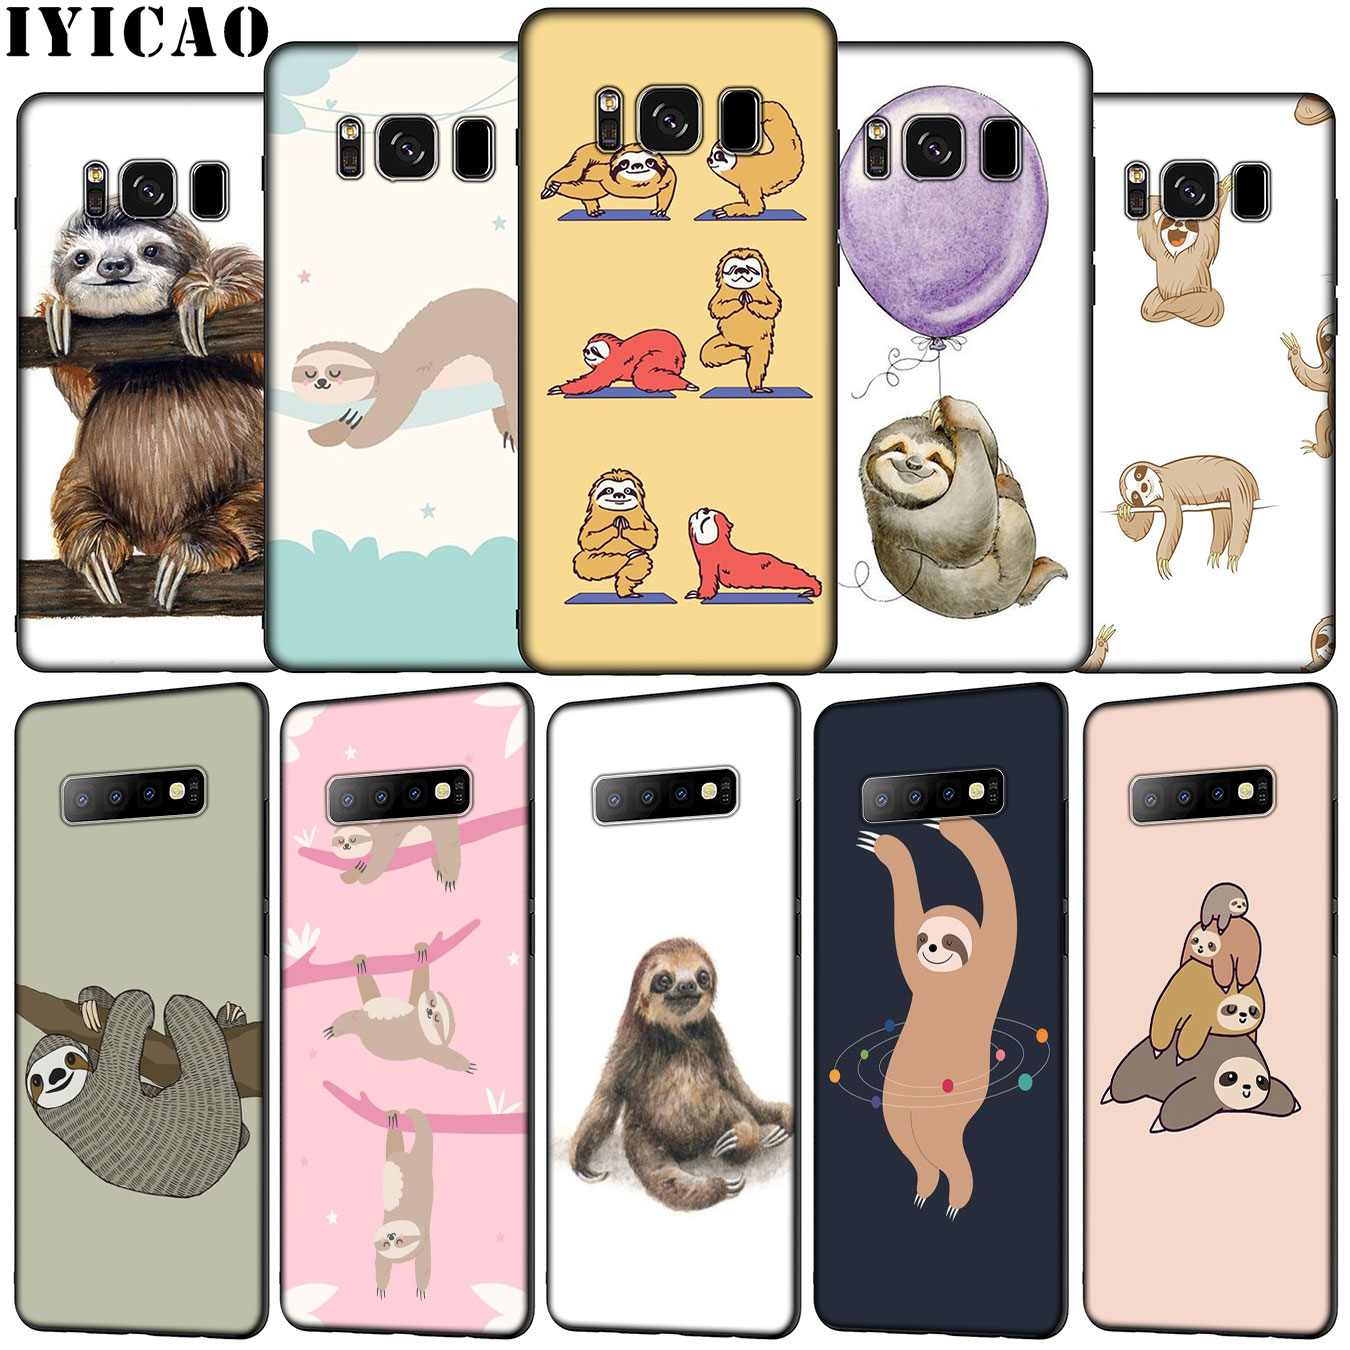 IYICAO yoga sloth rose Soft Silicone <font><b>Phone</b></font> <font><b>Case</b></font> for <font><b>Samsung</b></font> Galaxy S20 Ultra S10e S9 S8 Plus S6 <font><b>S7</b></font> Edge S10 Lite Cover image